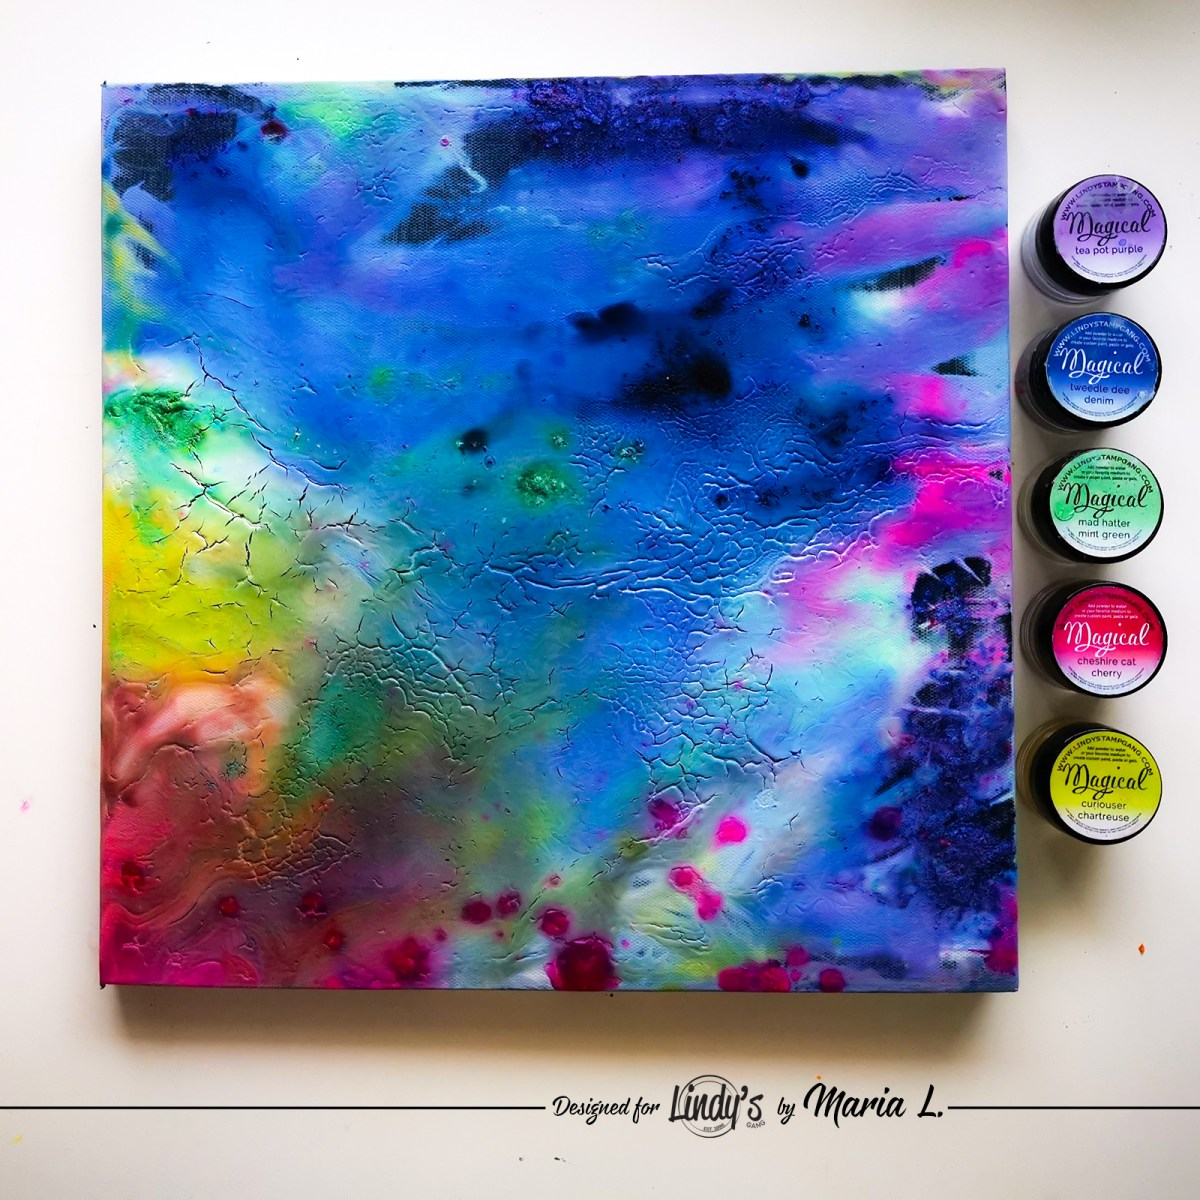 Acrylic Pouring with Magicals: Experiment by Maria Lillepruun